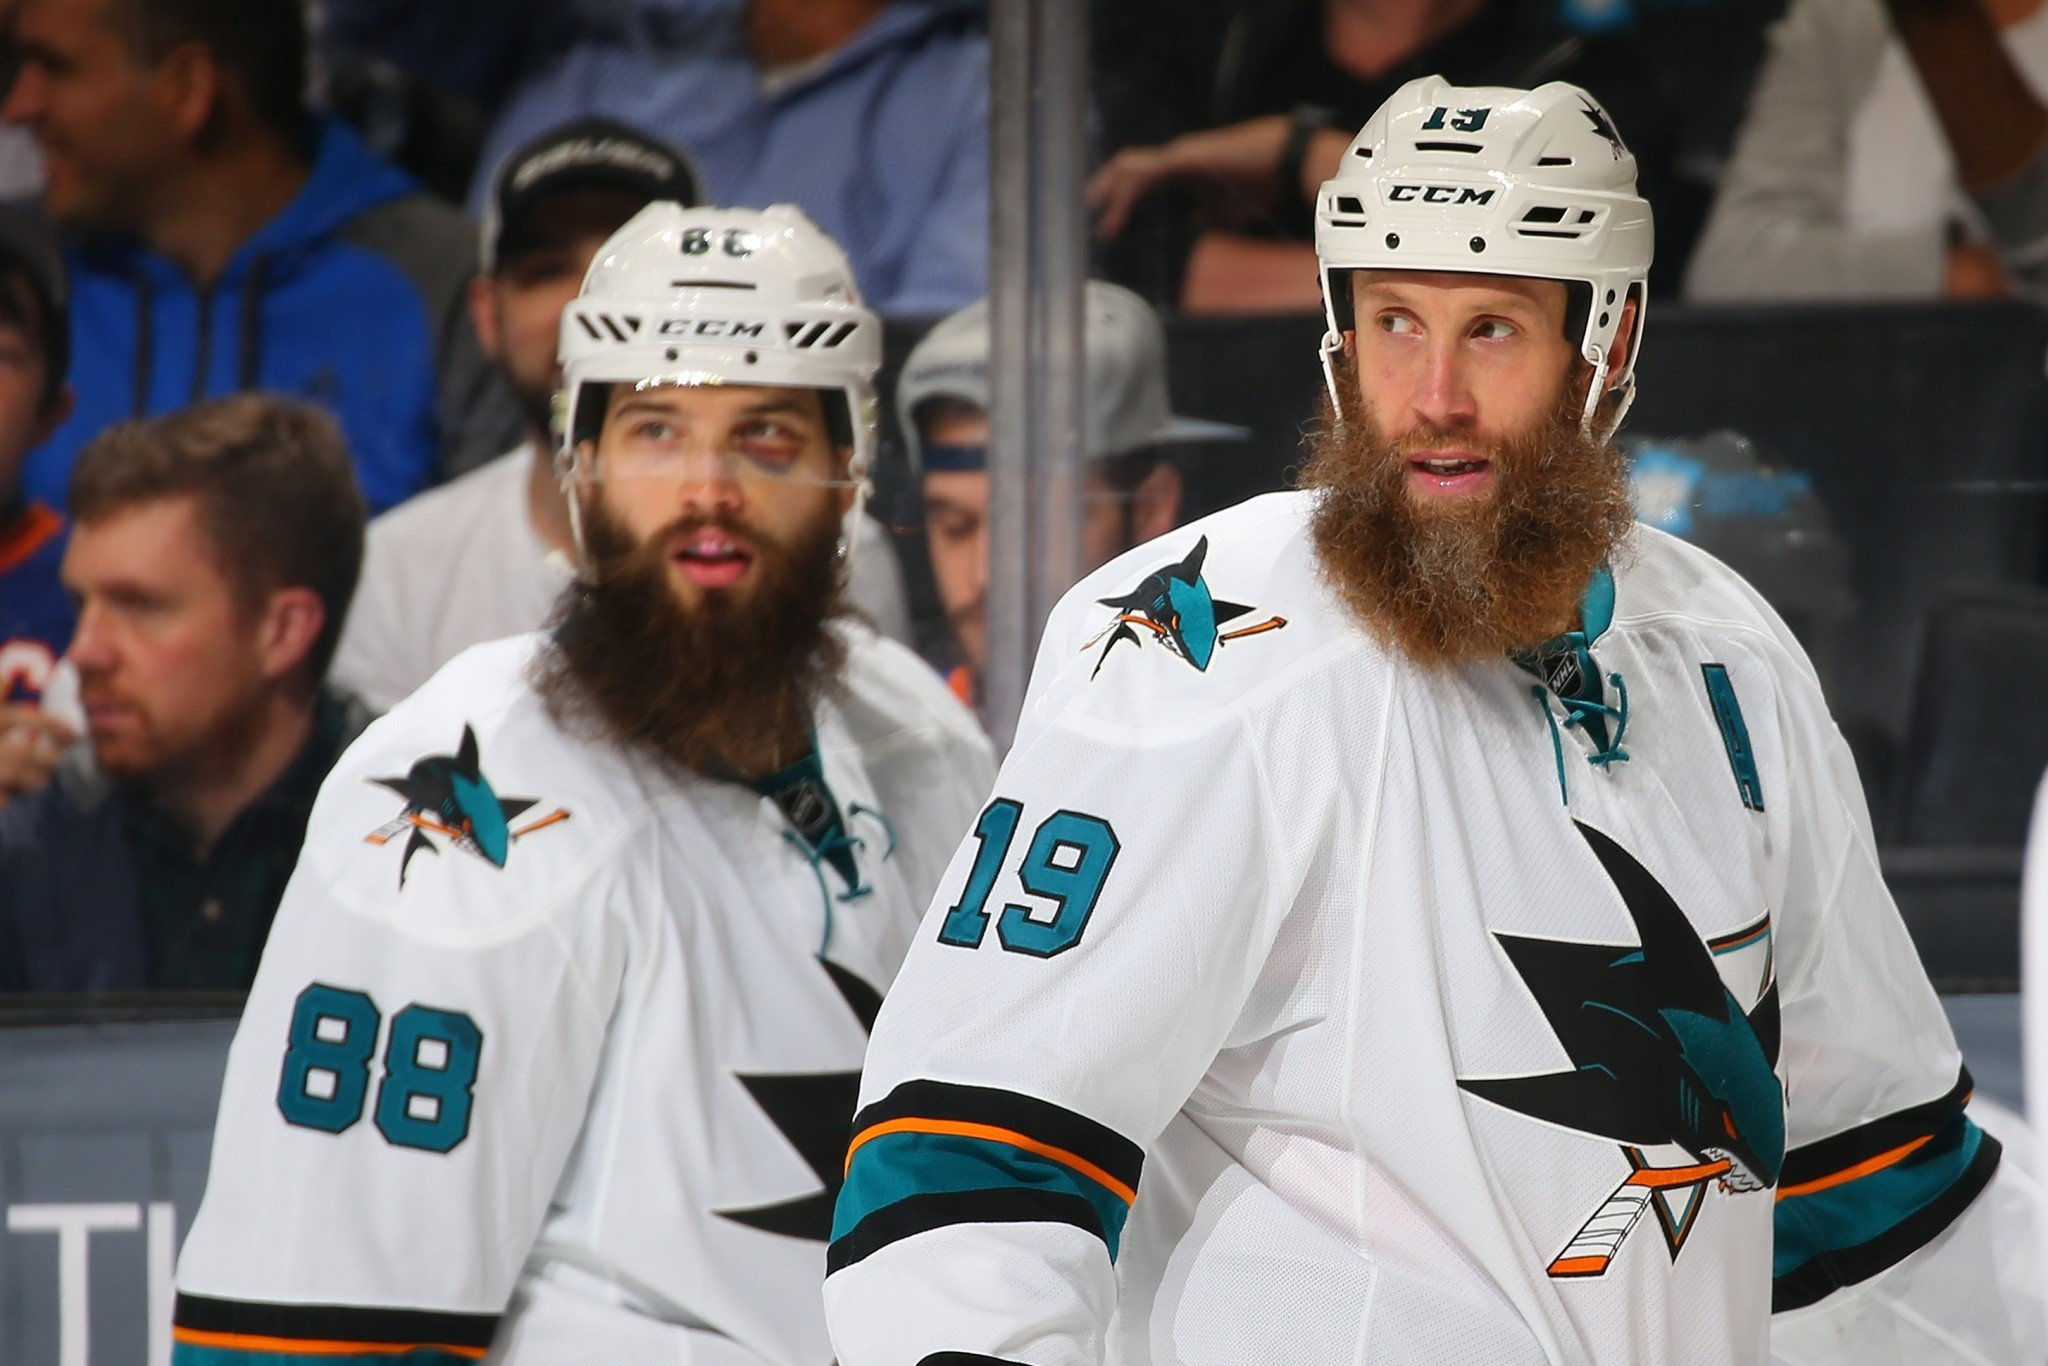 San Jose Sharks stars Joe Thornton and Brent Burns